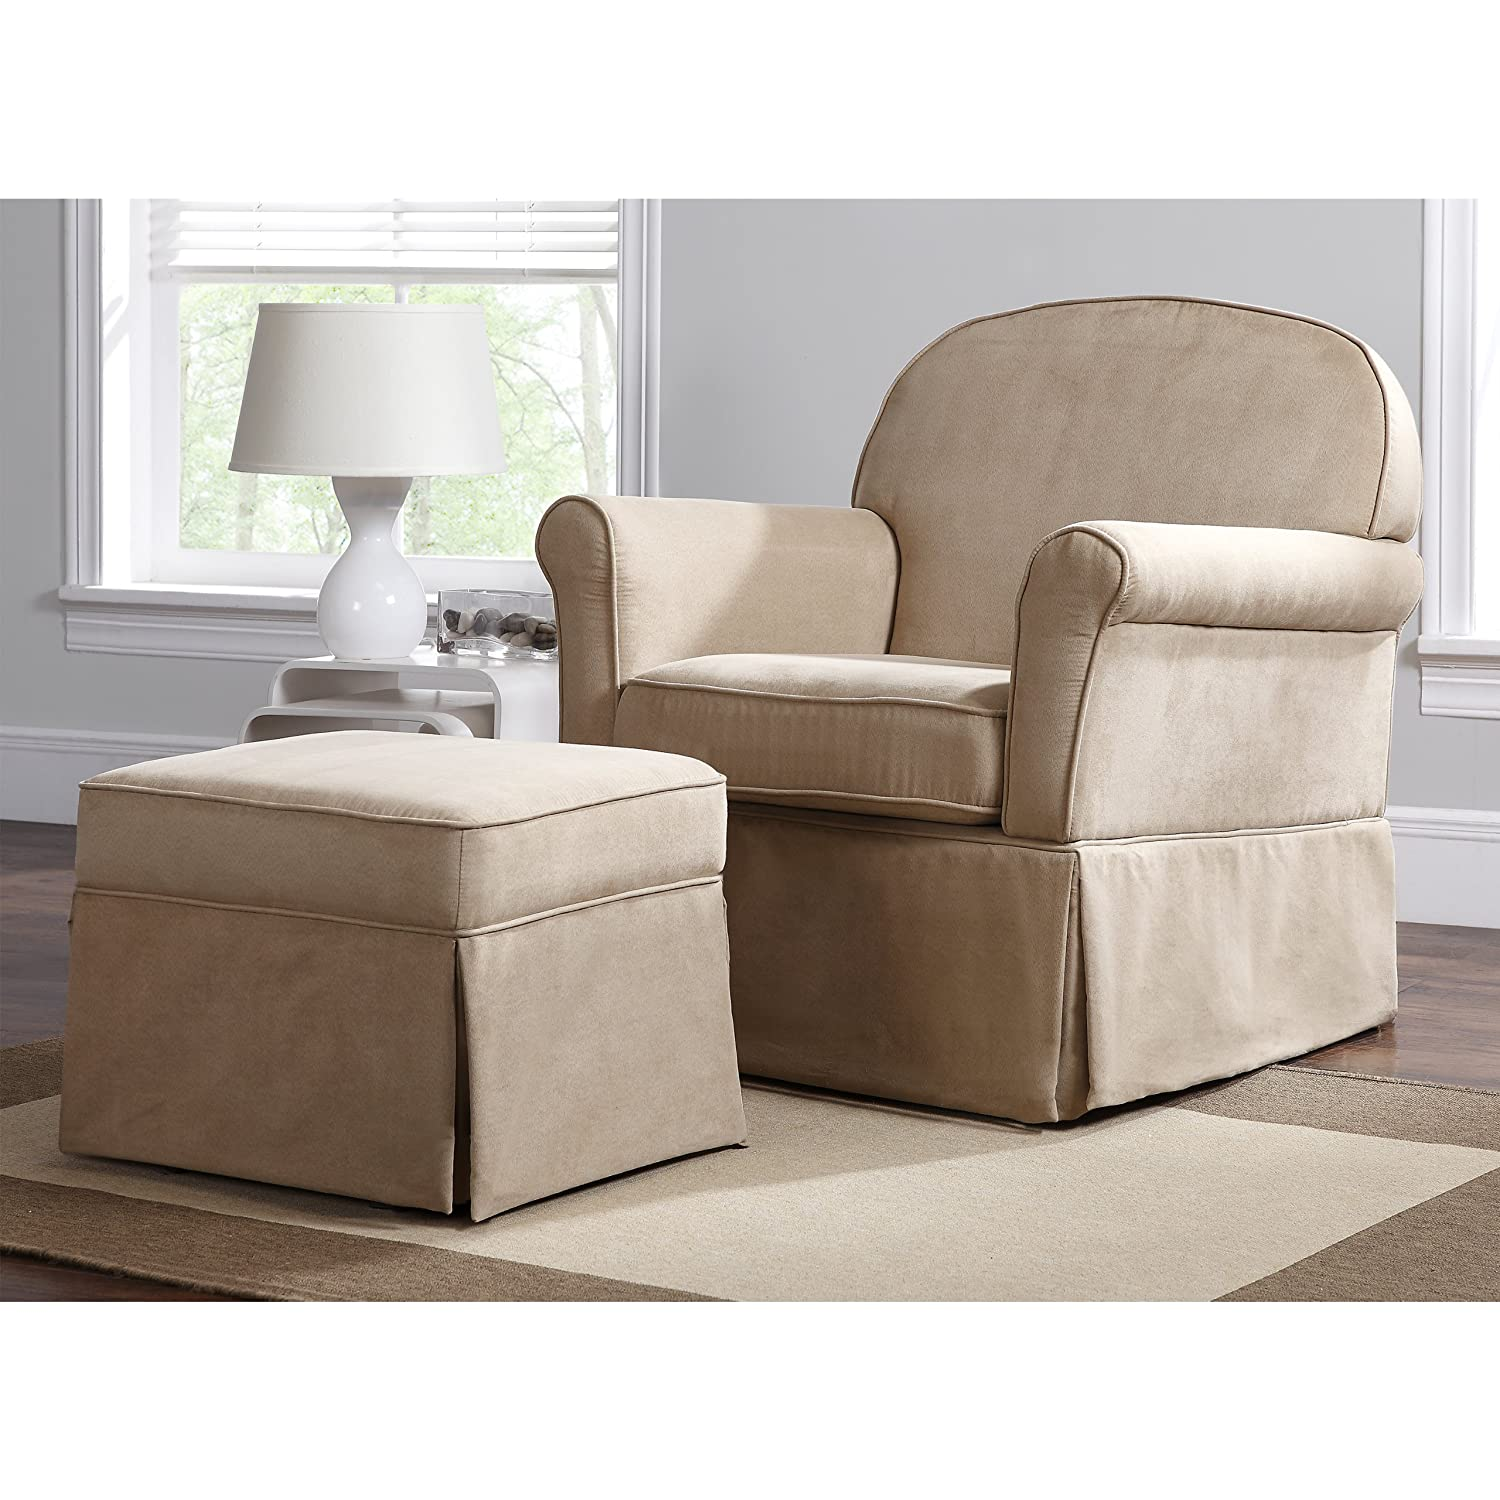 Amazon.com: Baby Relax Swivel Glider and Ottoman Set, Hickory Brown  Microfiber: Baby - Amazon.com: Baby Relax Swivel Glider And Ottoman Set, Hickory